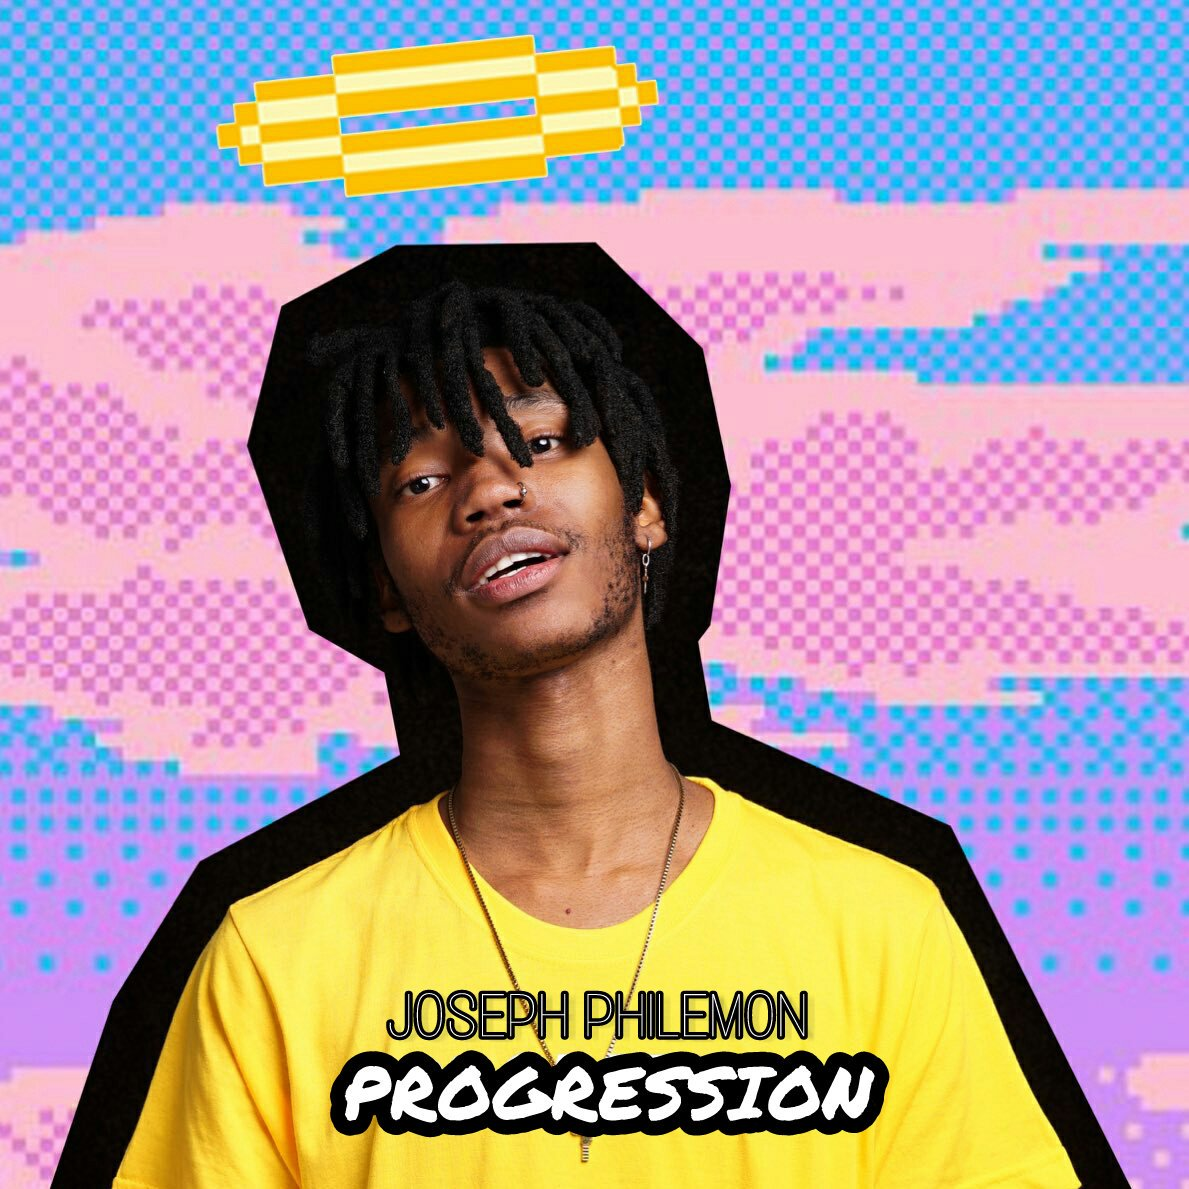 Listen to Joseph Philemon's New 'Progression' EP DIEHIgLWsAAzIiX